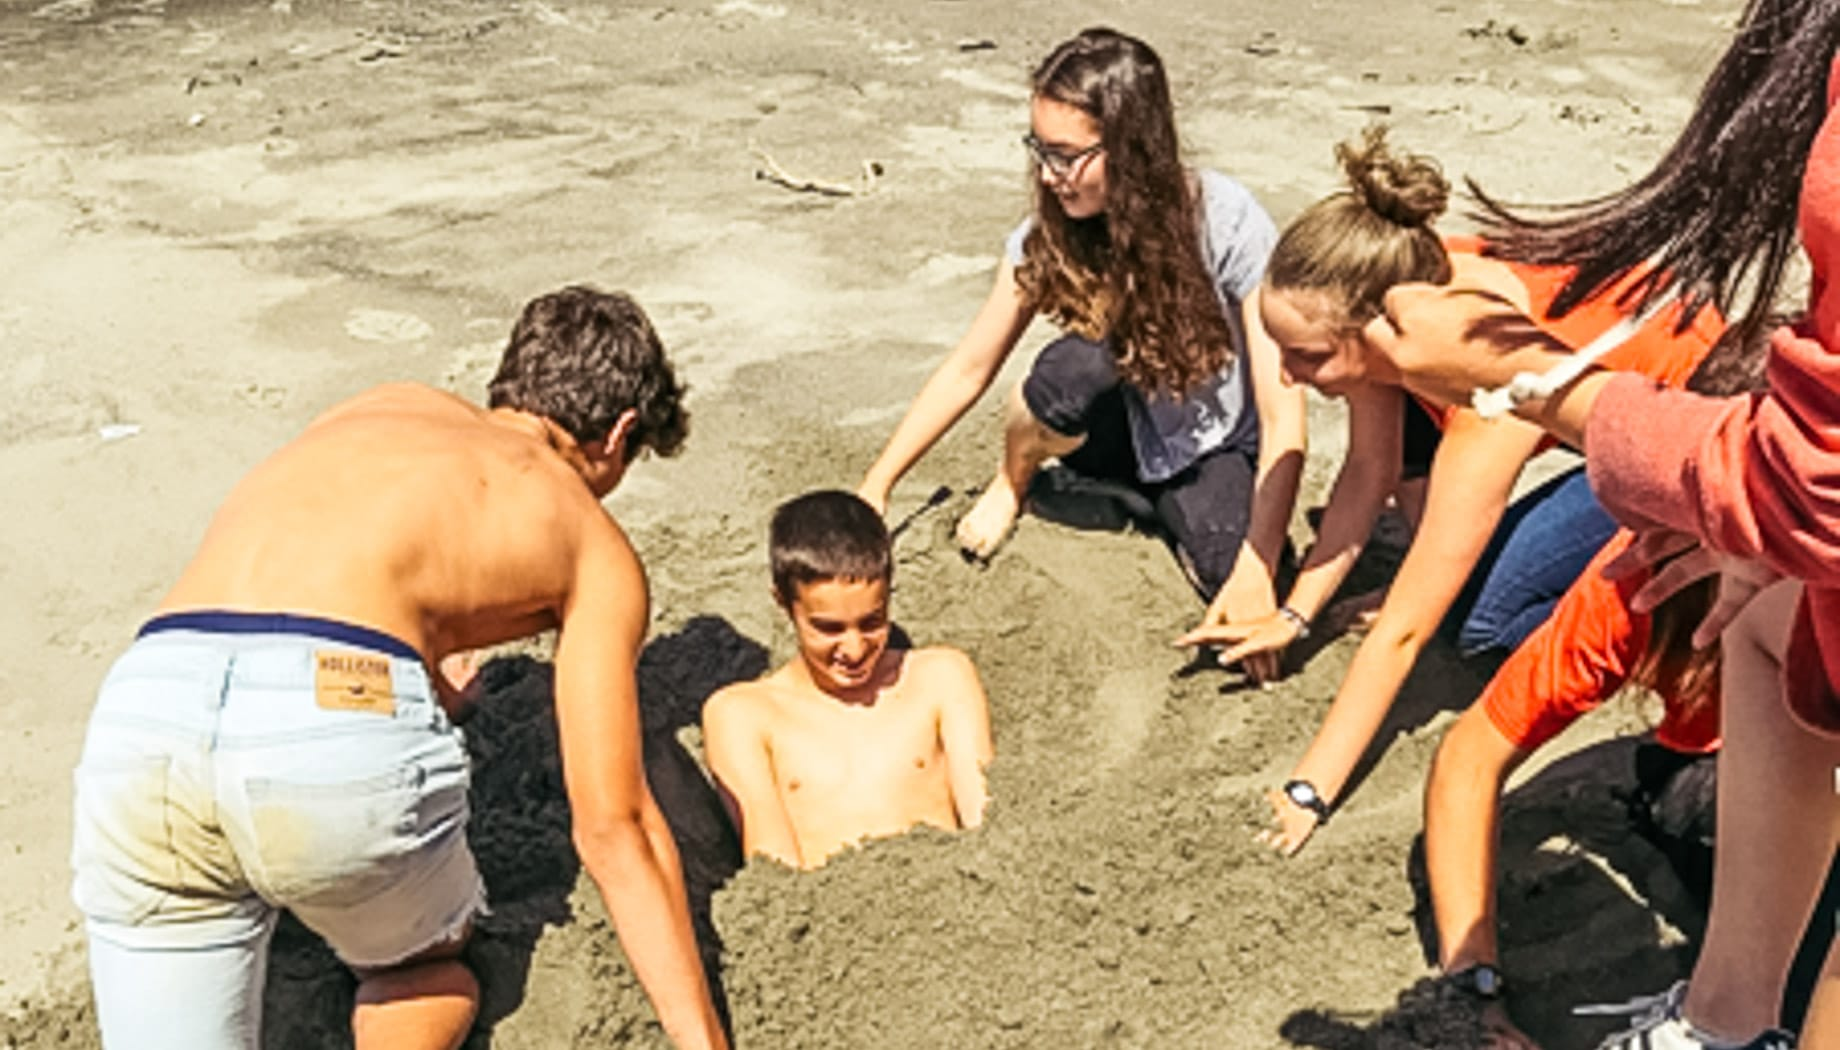 Fun at the beach on the Magical Mystery quest